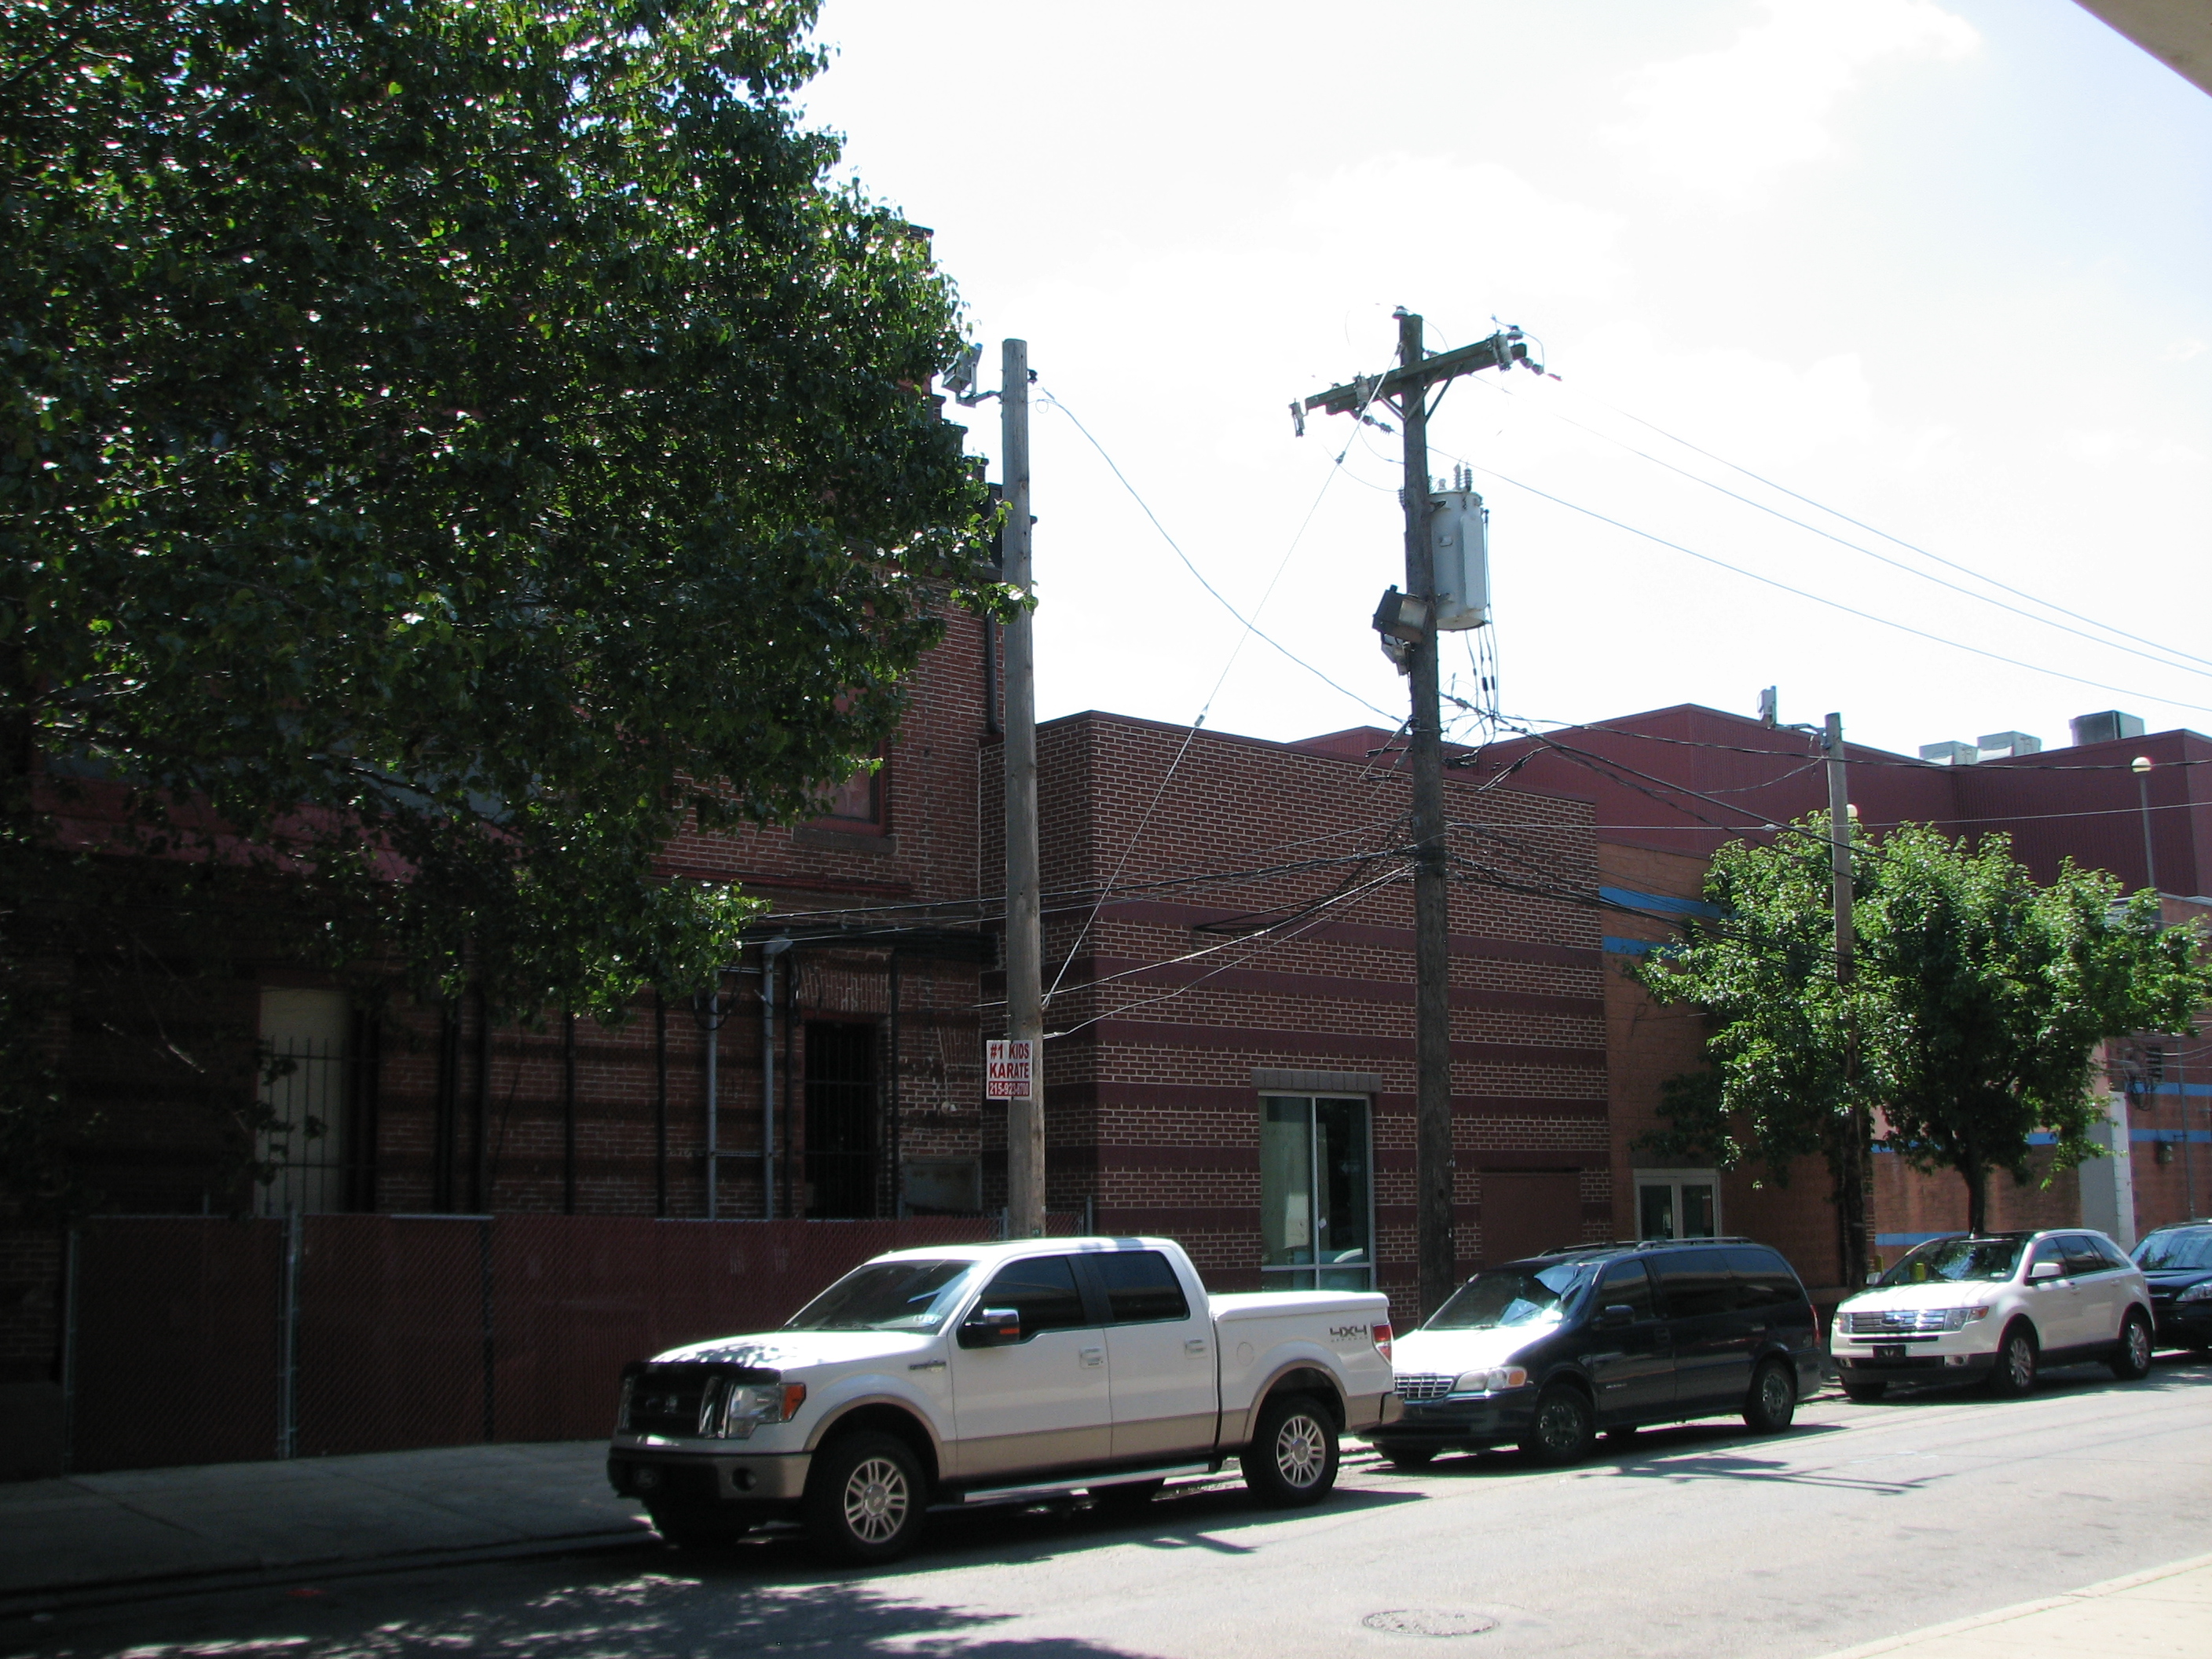 Preservationists hope the demo permits are intended for a modern addition to the rear of the building on Water Street.